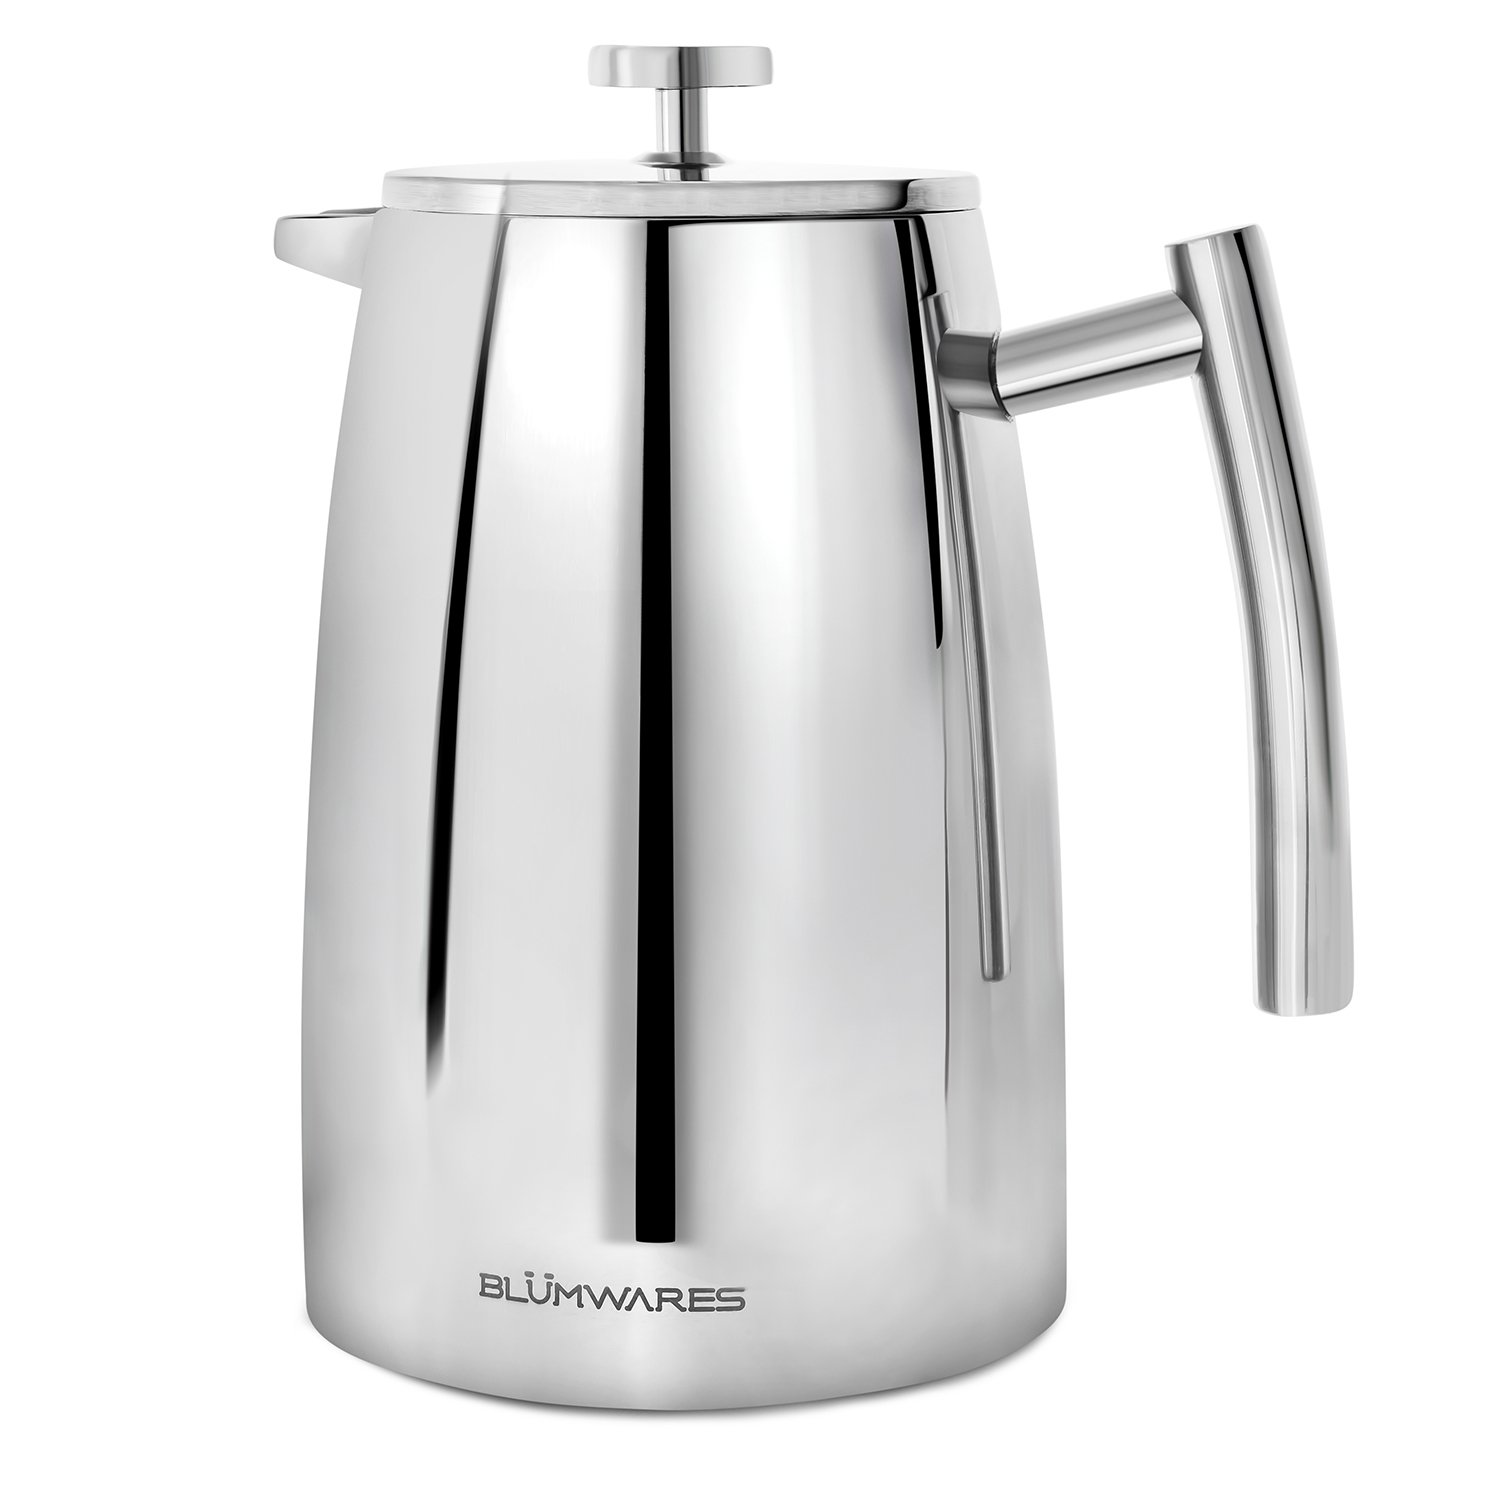 Blümwares 50 Ounce (1500ml) French Press Coffee Maker - 18/10 Stainless Steel